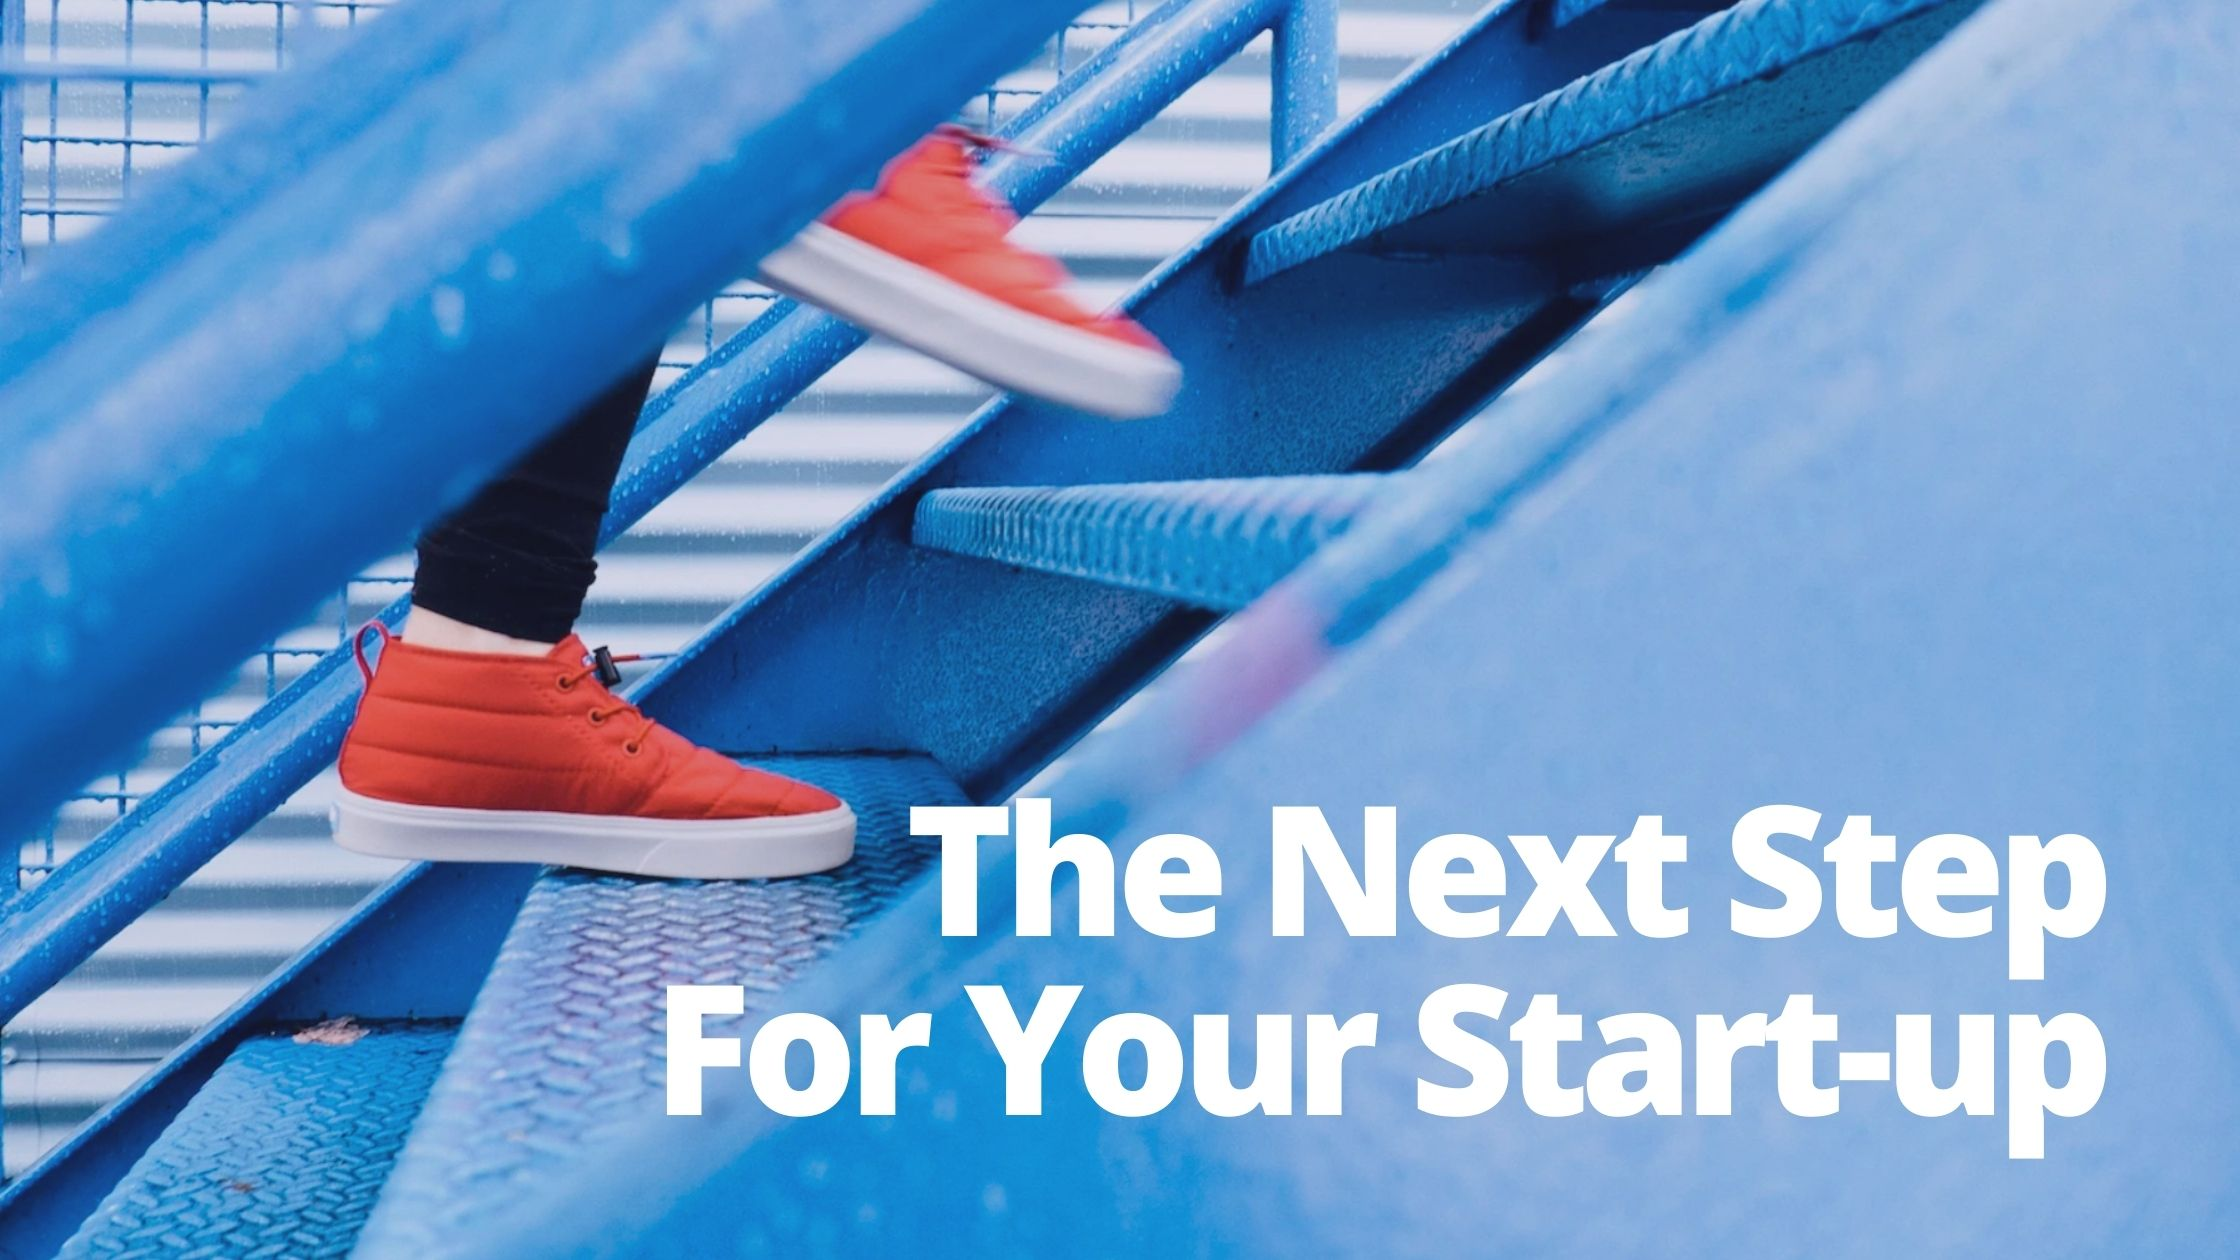 The next step for your start-up business